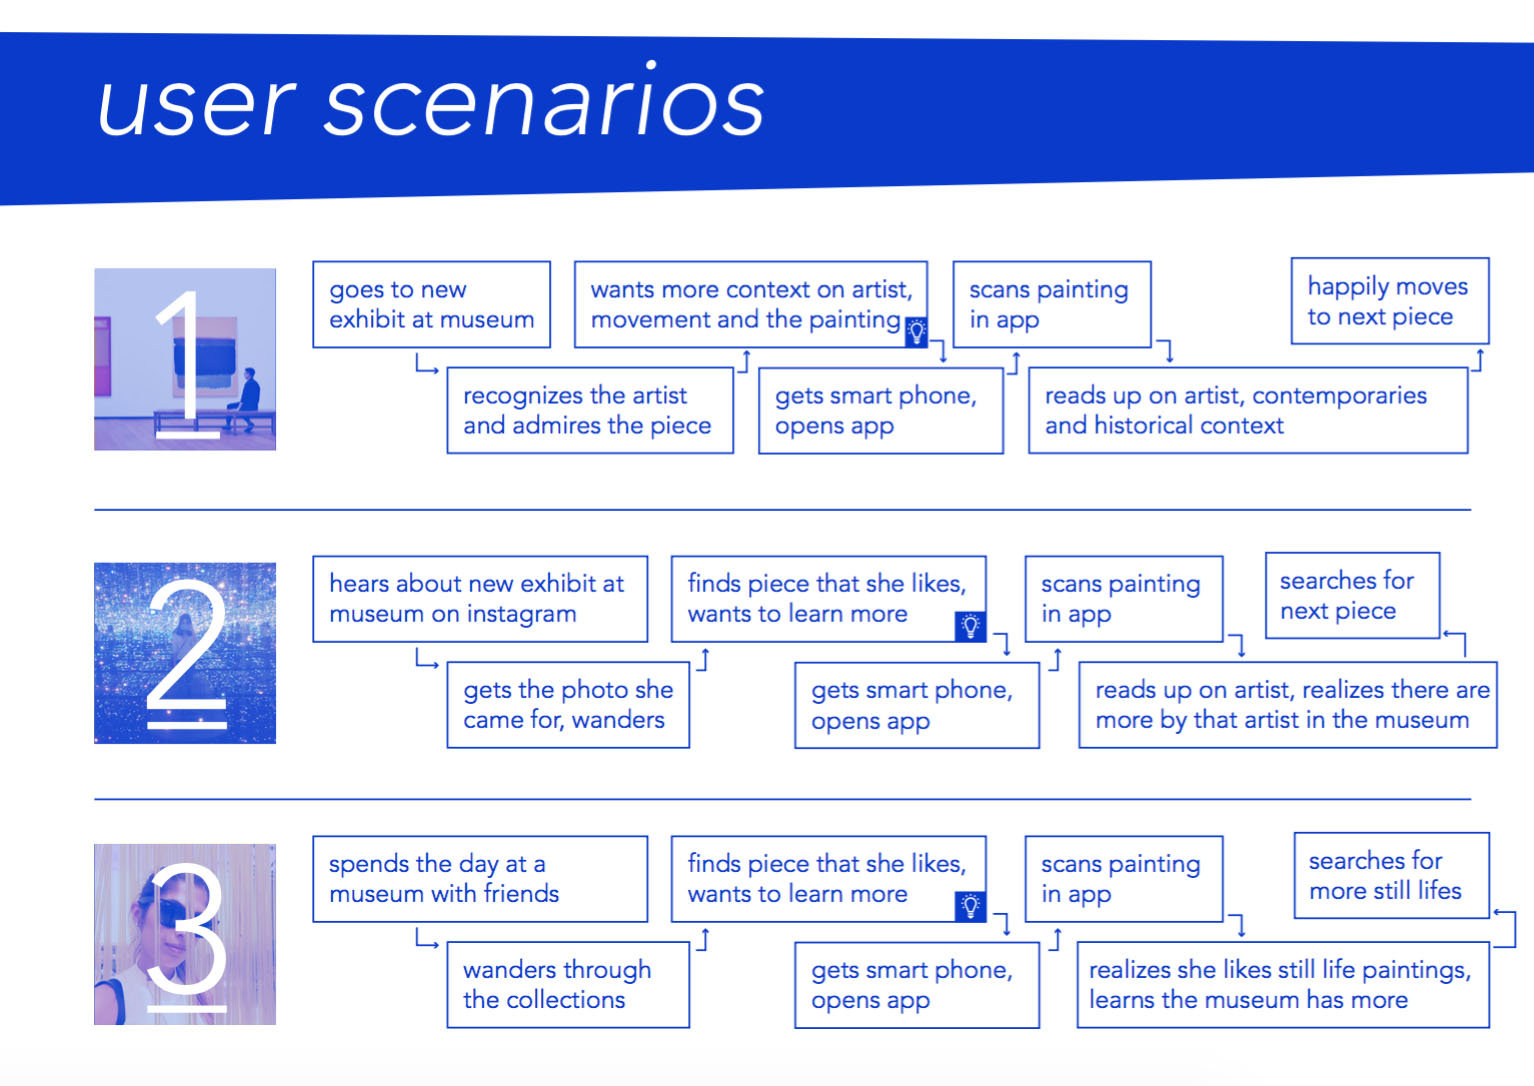 The user personas are then traced in user scenarios. Each moment of opportunity in the scenarios is marked with a lightbulb.